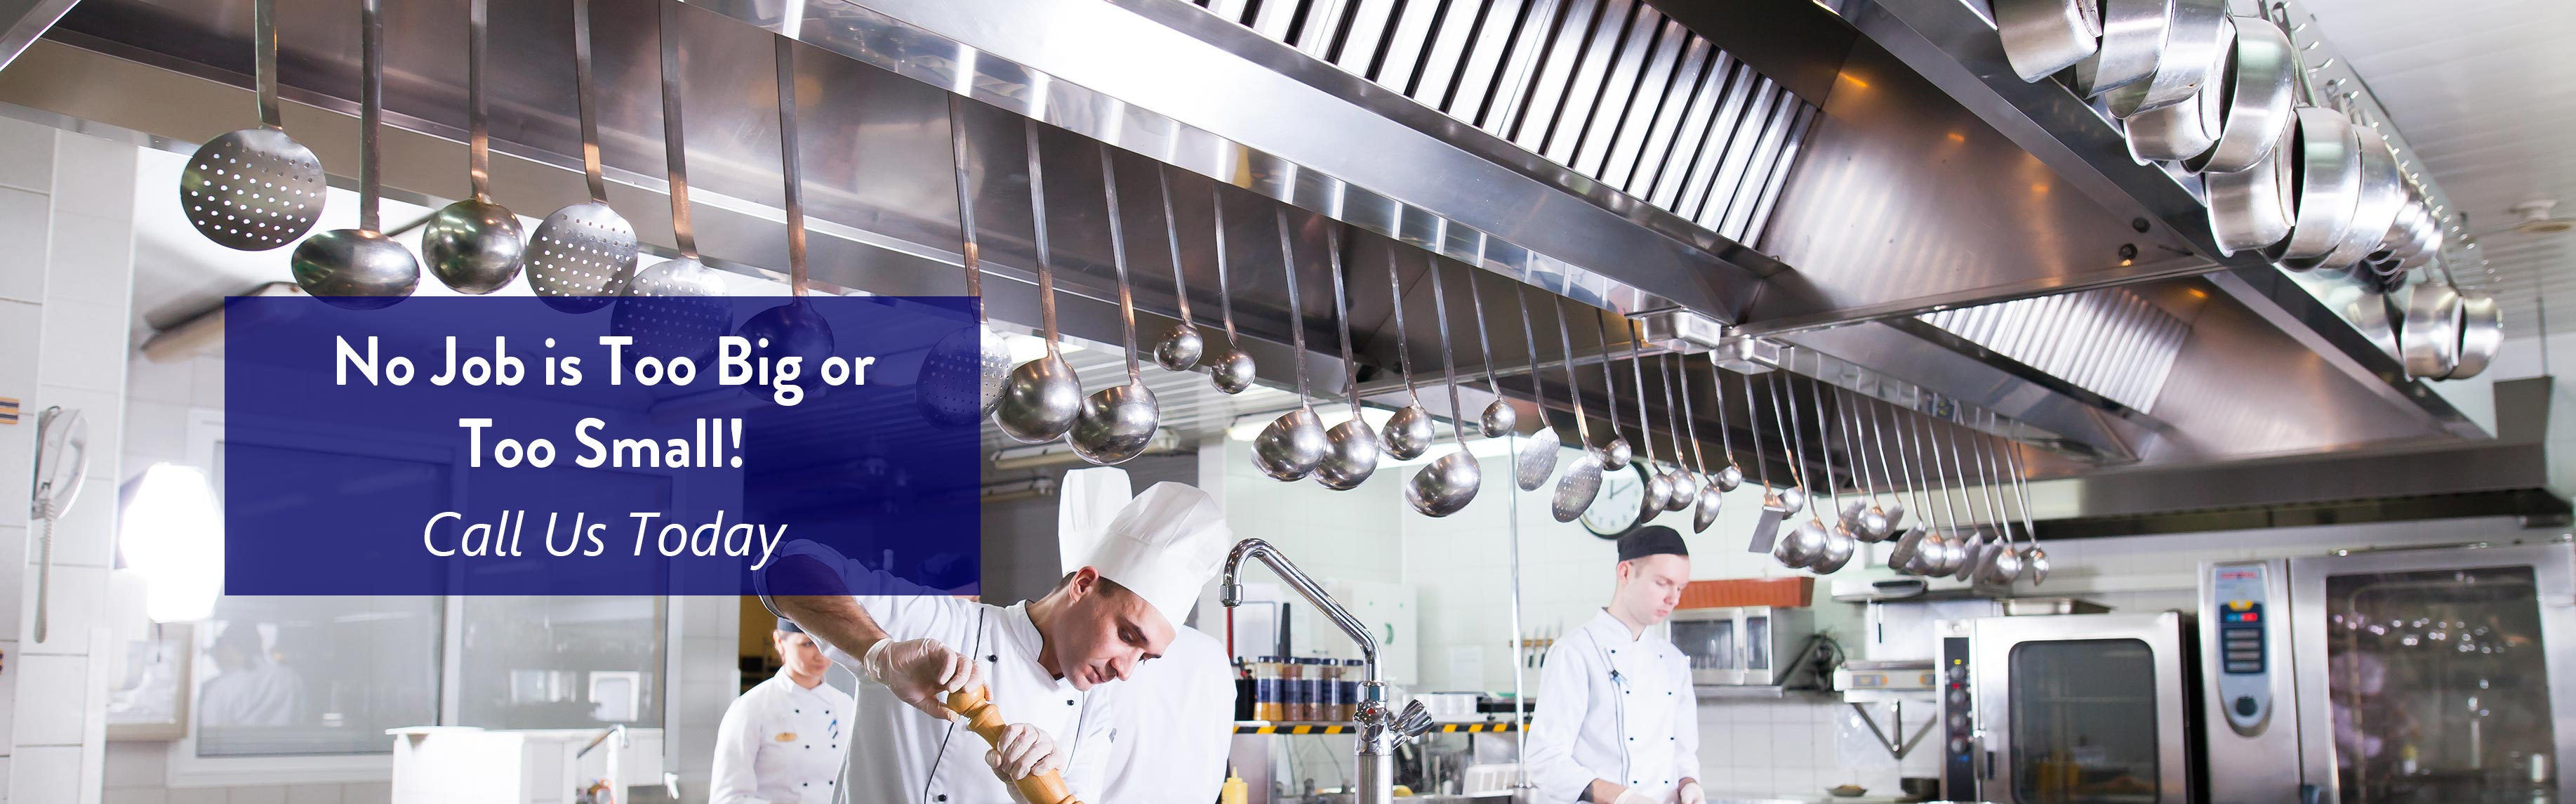 Chef working in Commercial Kitchen